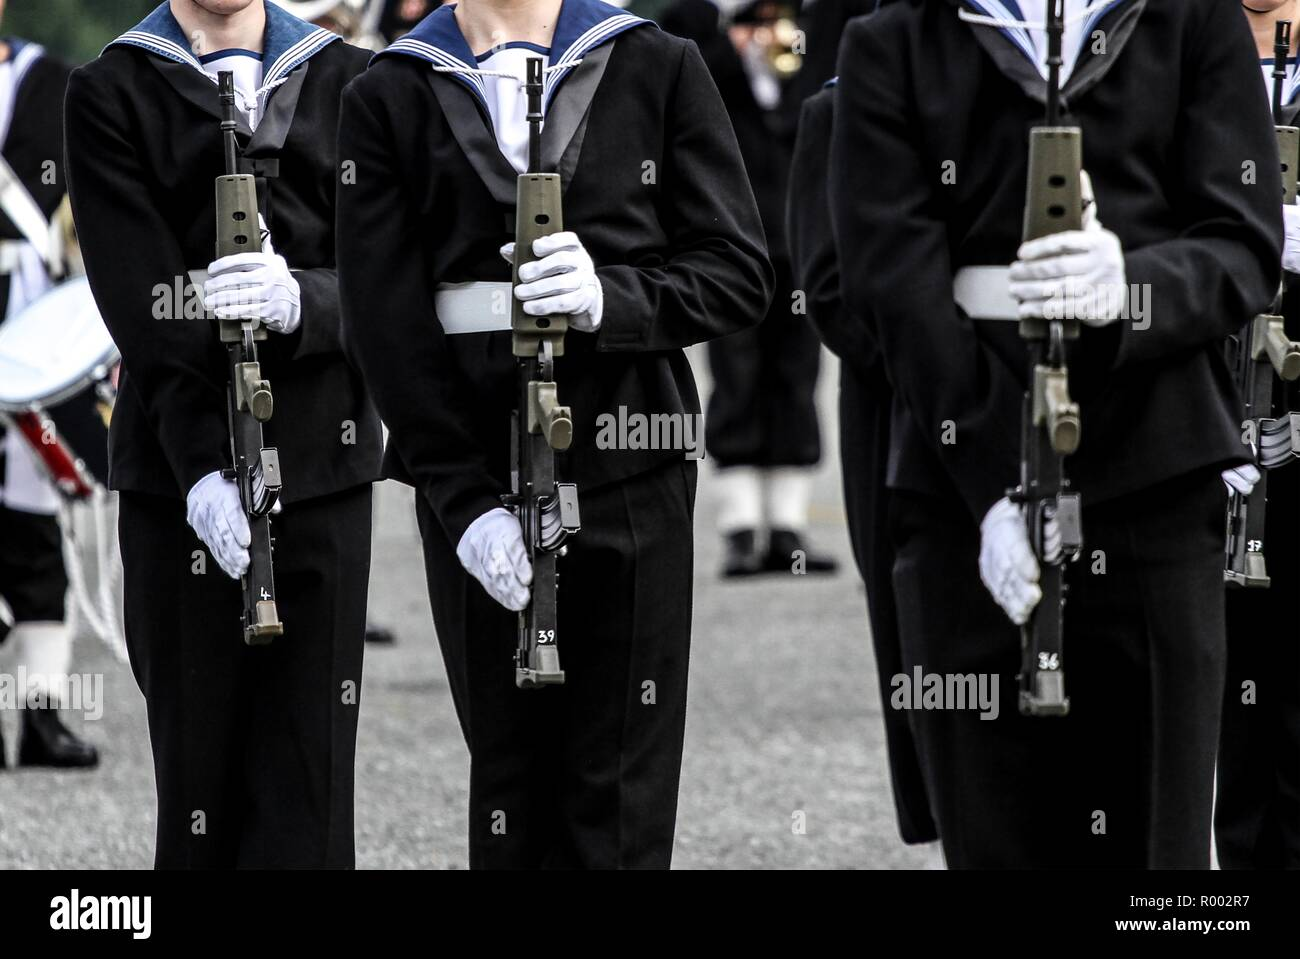 Royal Navy Display Guard with rifles on parade with prince andrew - Stock Image